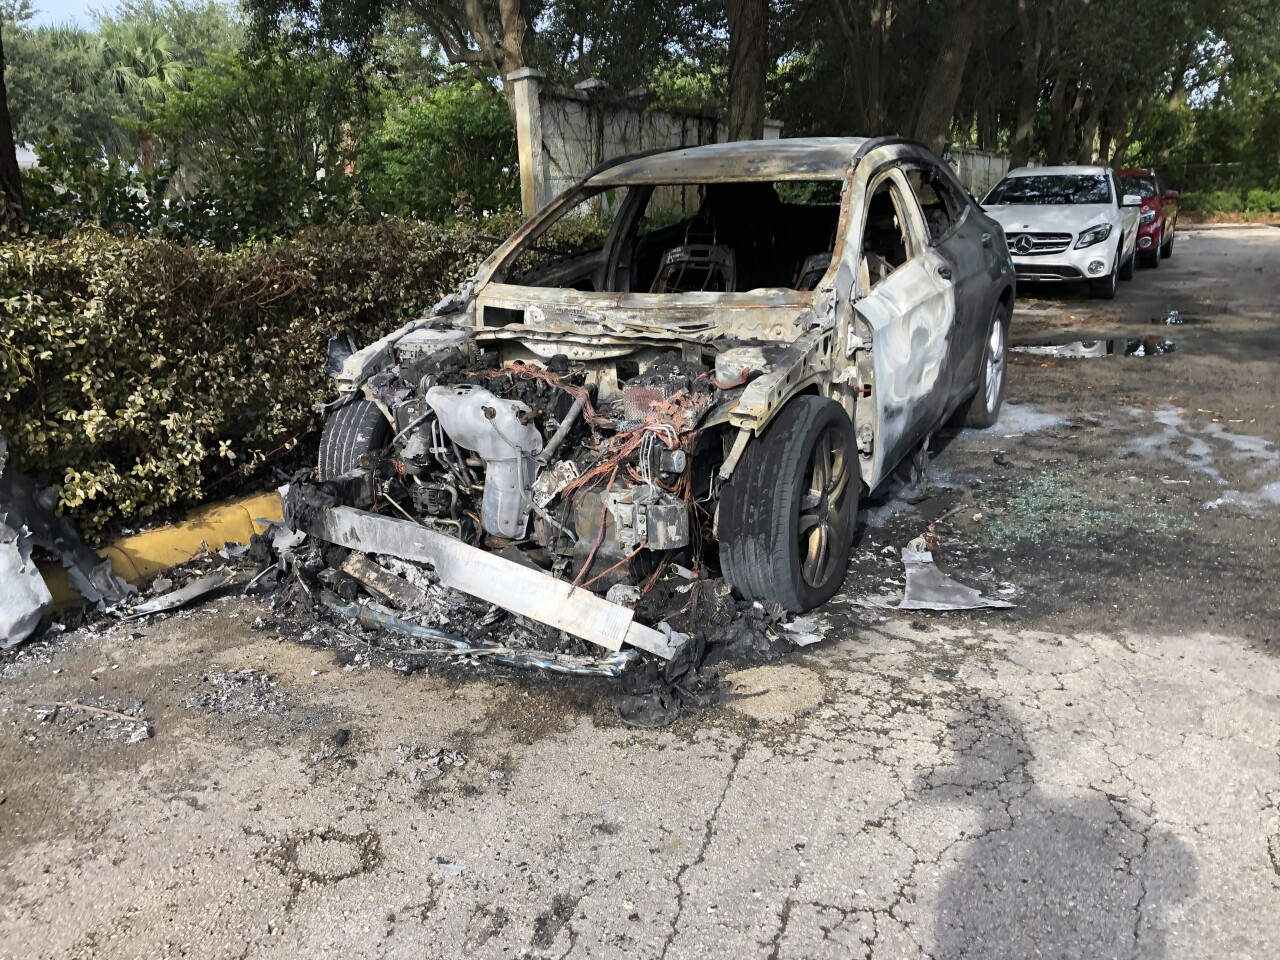 Charred Mercedes-Benz on car lot in West Palm Beach